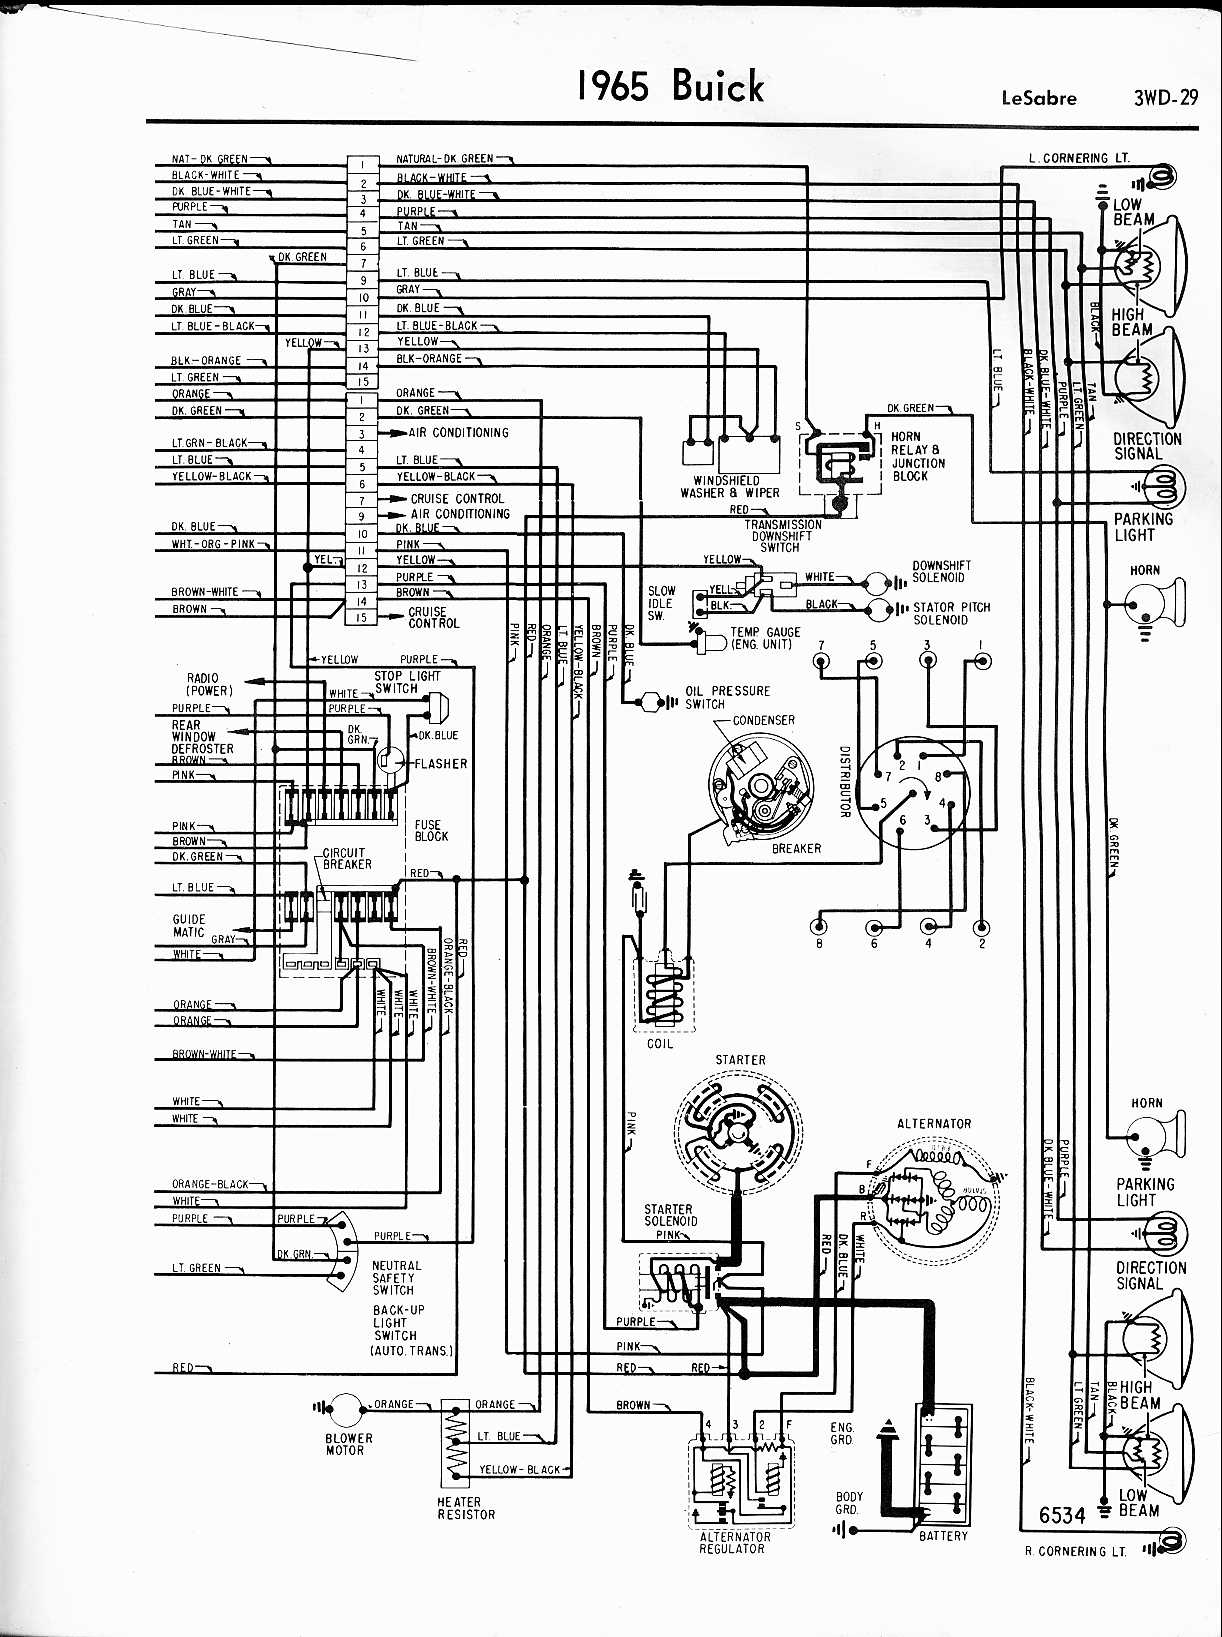 8926 96 97 98 Mustang Altenator Starting And Charging System ... Vw Beetle Charging System Wiring Diagram on 1963 vw wiring diagram, vw beetle fuel injection diagram, 1999 vw passat wiring diagram, 1967 vw wiring diagram, 1974 vw engine diagram, alfa romeo spider wiring diagram, vw rabbit wiring-diagram, vw turn signal wiring diagram, vw distributor diagram, fiat uno wiring diagram, vw buggy wiring-diagram, volkswagen fuel diagram, 1973 vw wiring diagram, porsche cayenne wiring diagram, vw starter wiring diagram, vw type 2 wiring diagram, vw beetle engine diagram, 68 vw wiring diagram, type 3 wiring diagram, vw light switch wiring,